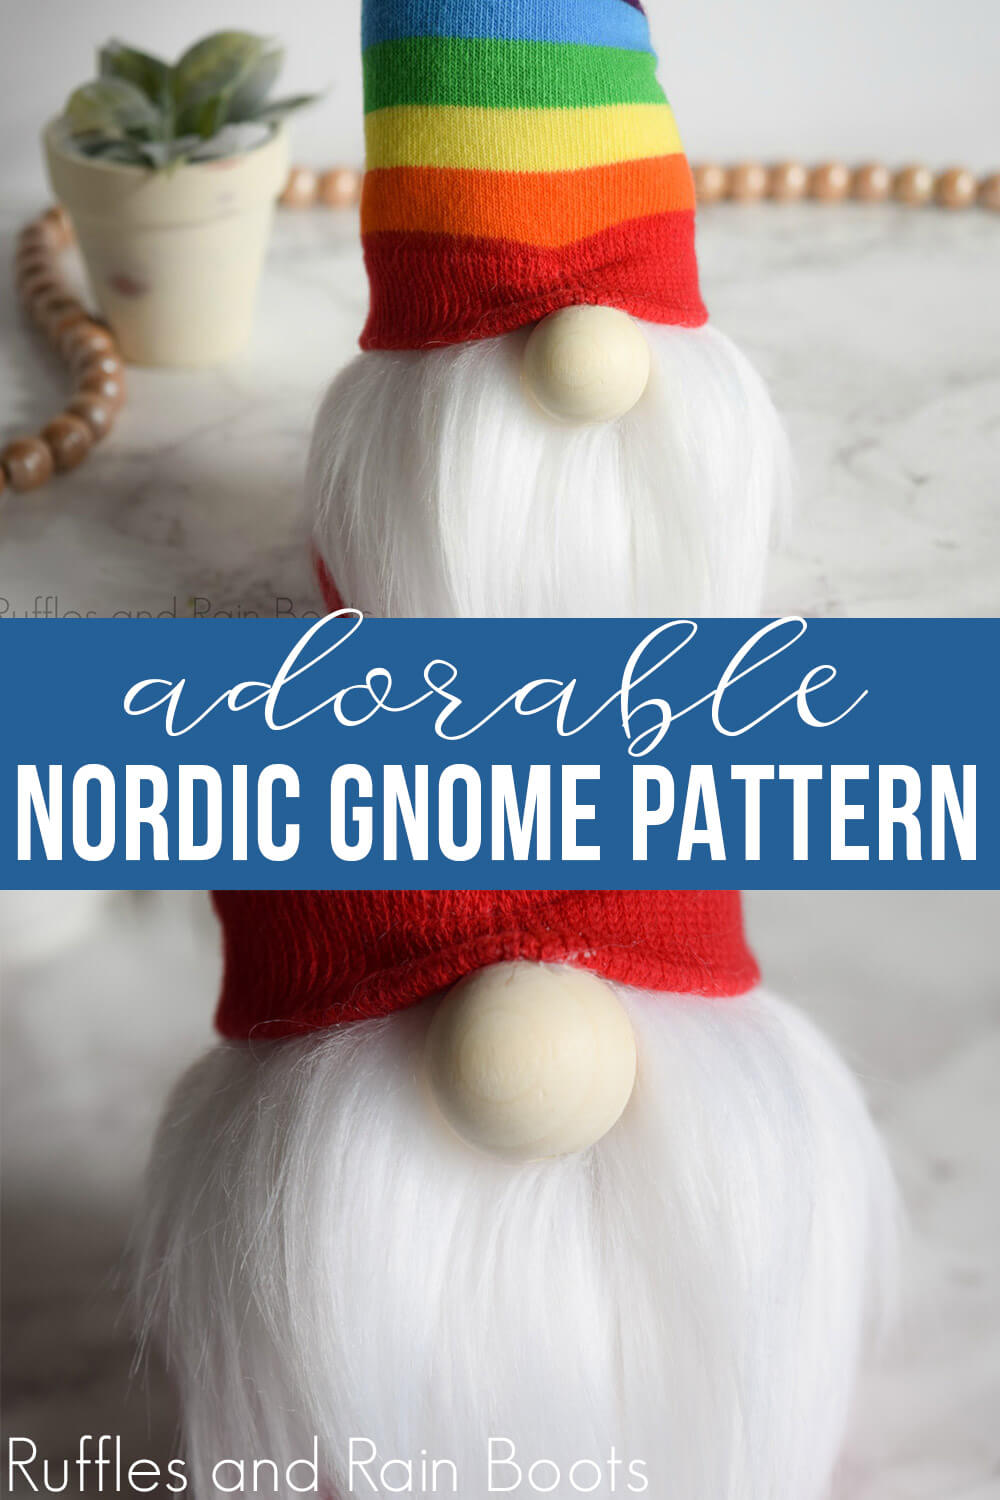 photo collage of Nordic gnome with a twisty hat with text which reads adorable Nordic gnome pattern